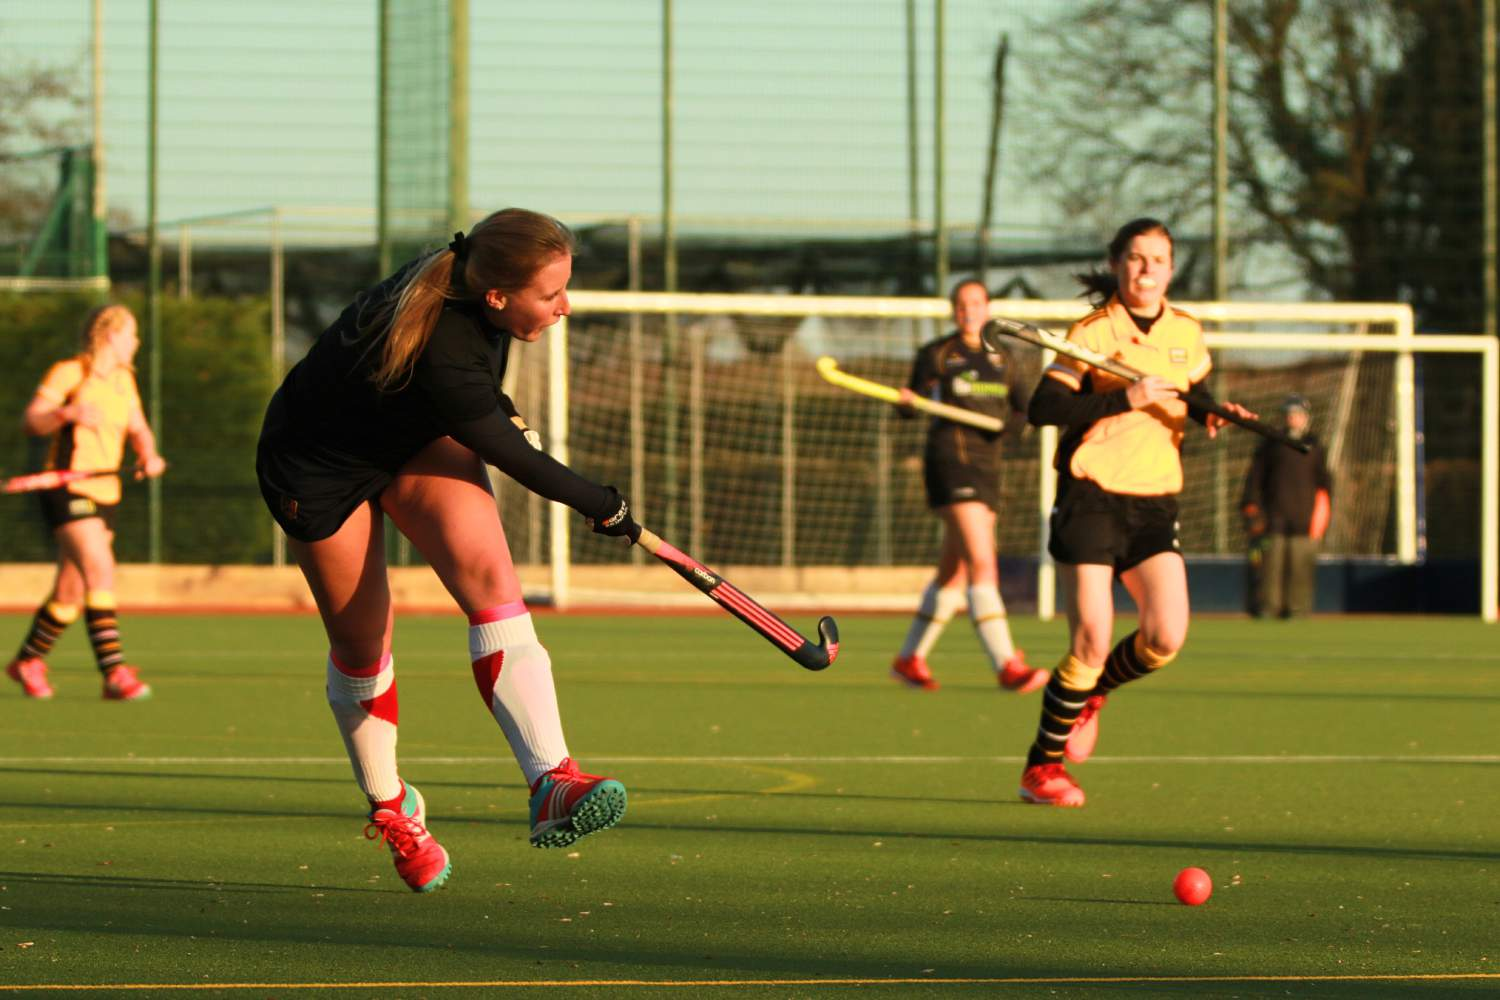 UYHC L3s secure promotion in 2-1 win